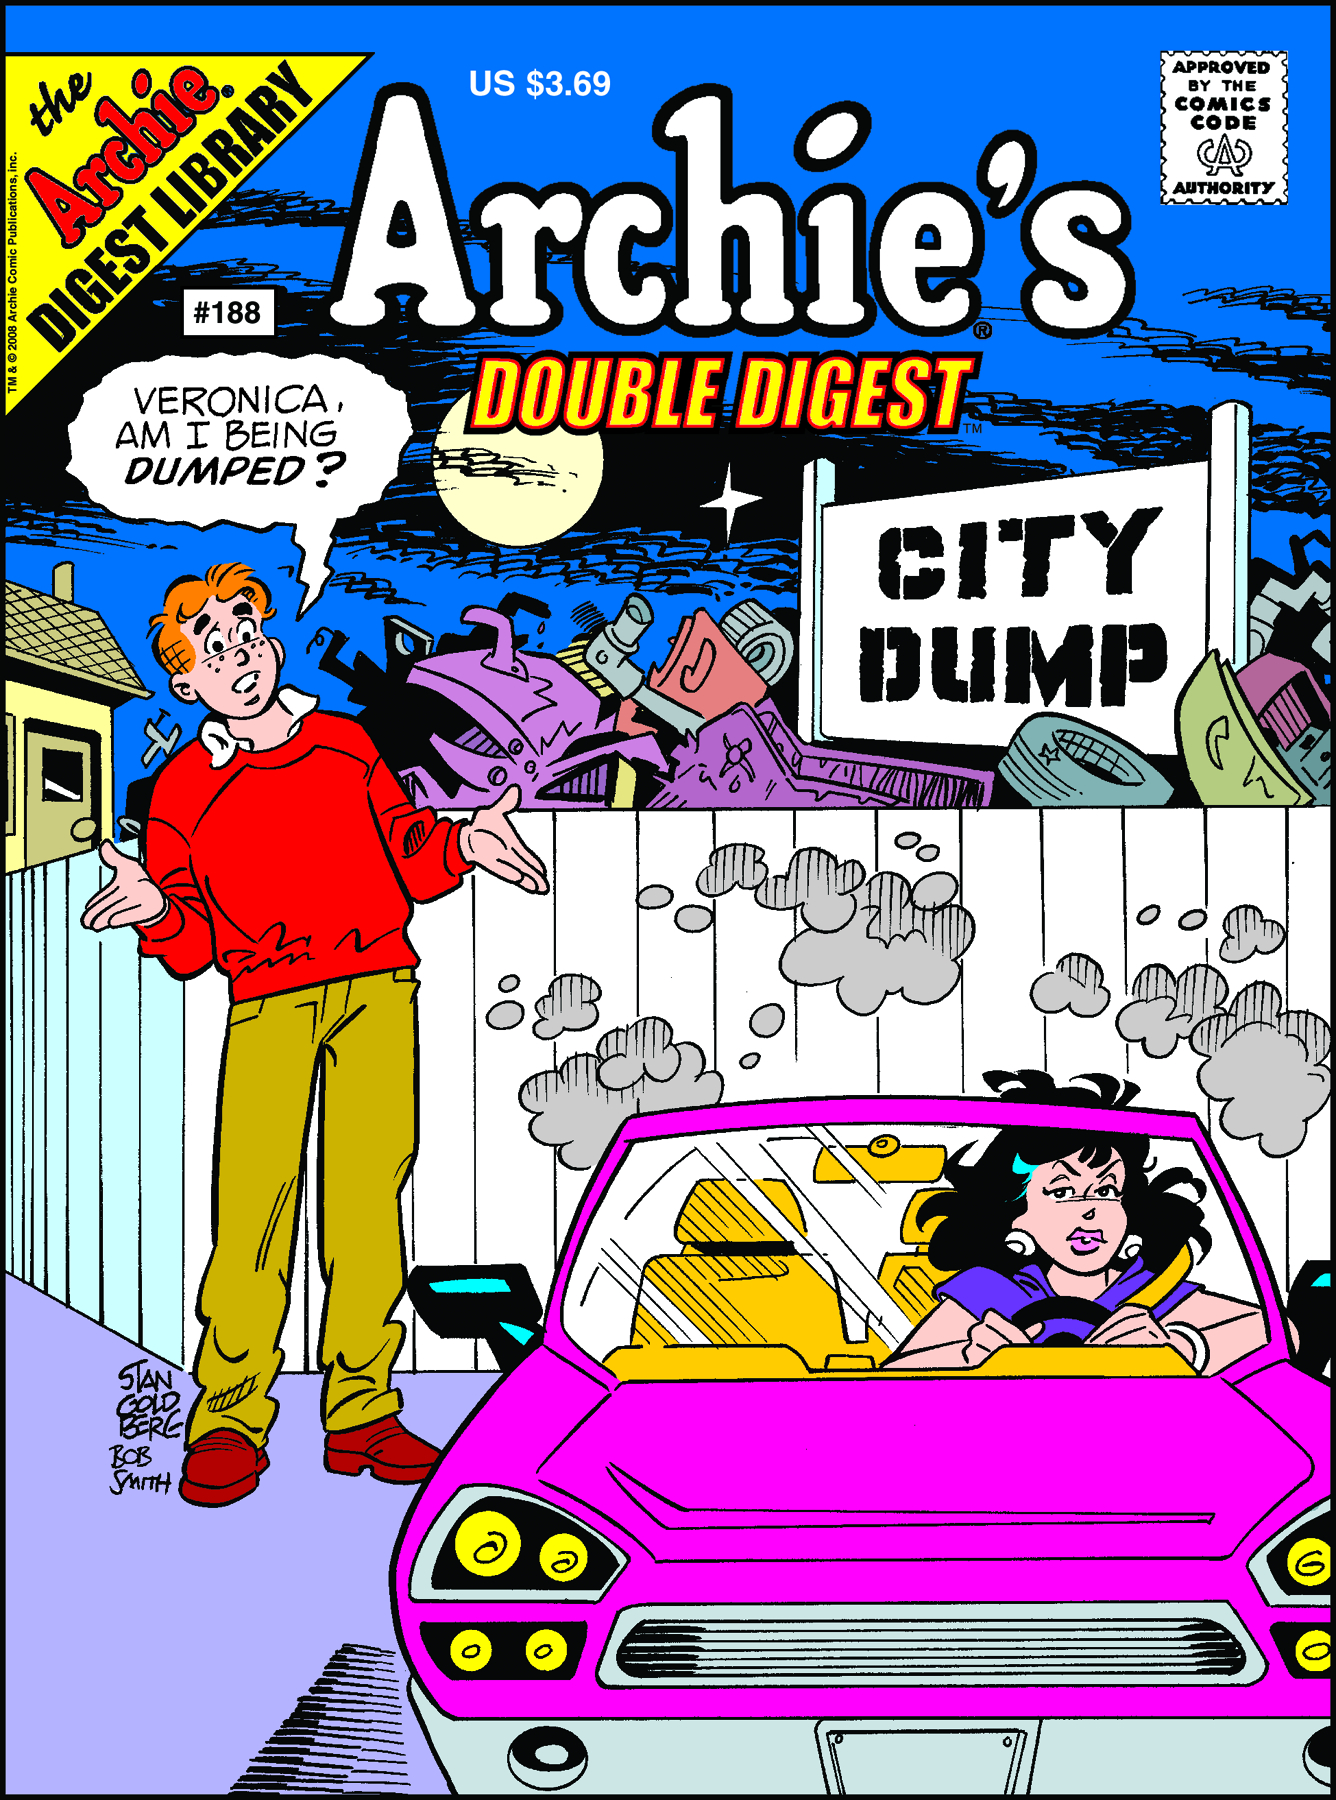 ARCHIE DOUBLE DIGEST #188